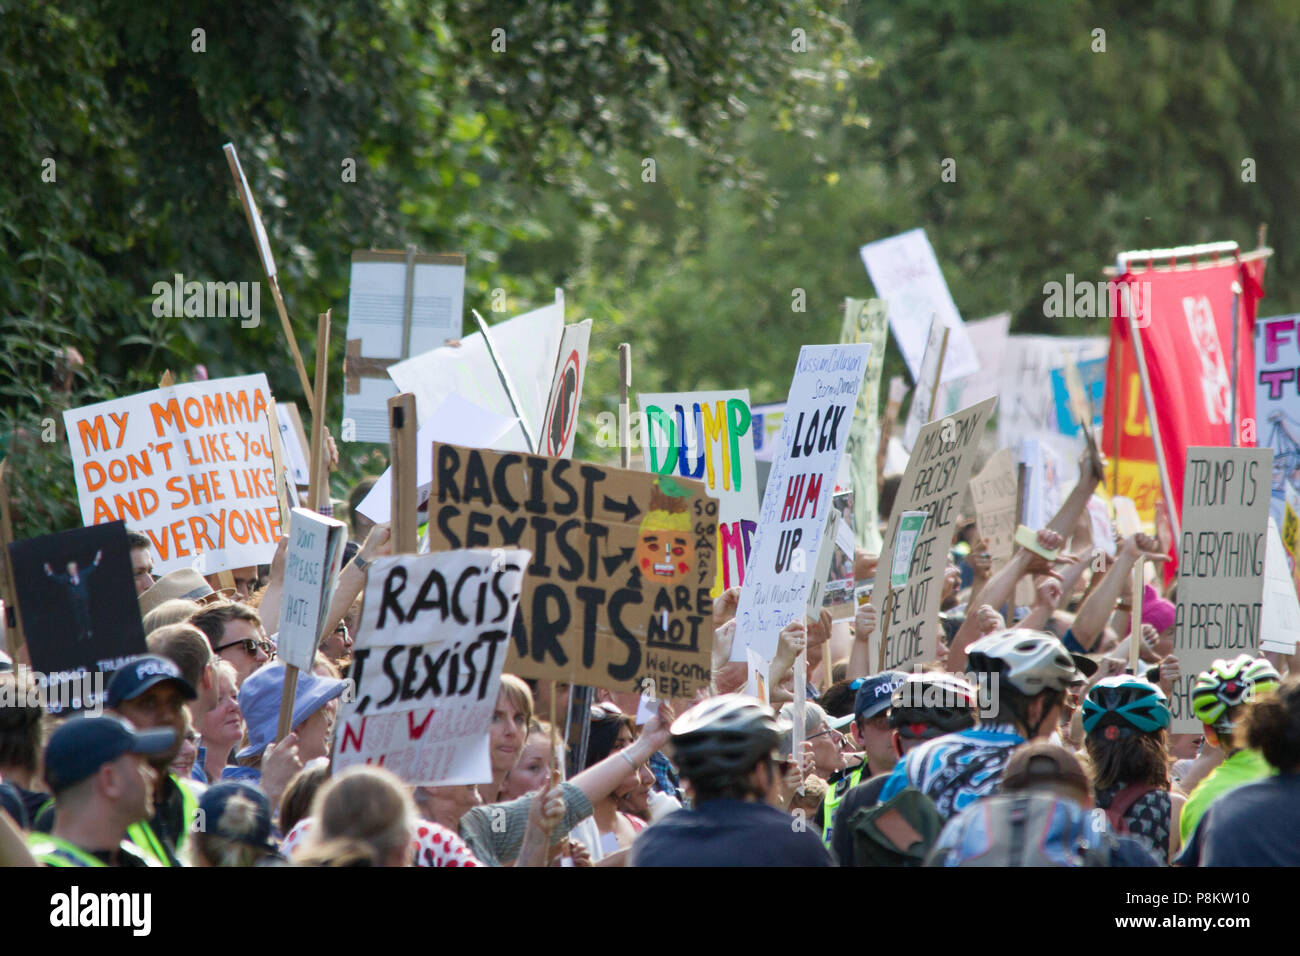 Woodstock, Oxford, UK 12th July 2018. Hundreds  protest at the gate of Blenheim palace as   President Donald Trump's attends a  black tie dinner hosted by Prime Minister Theresa May. © Pete Lusabia/Alamy News Live - Stock Image